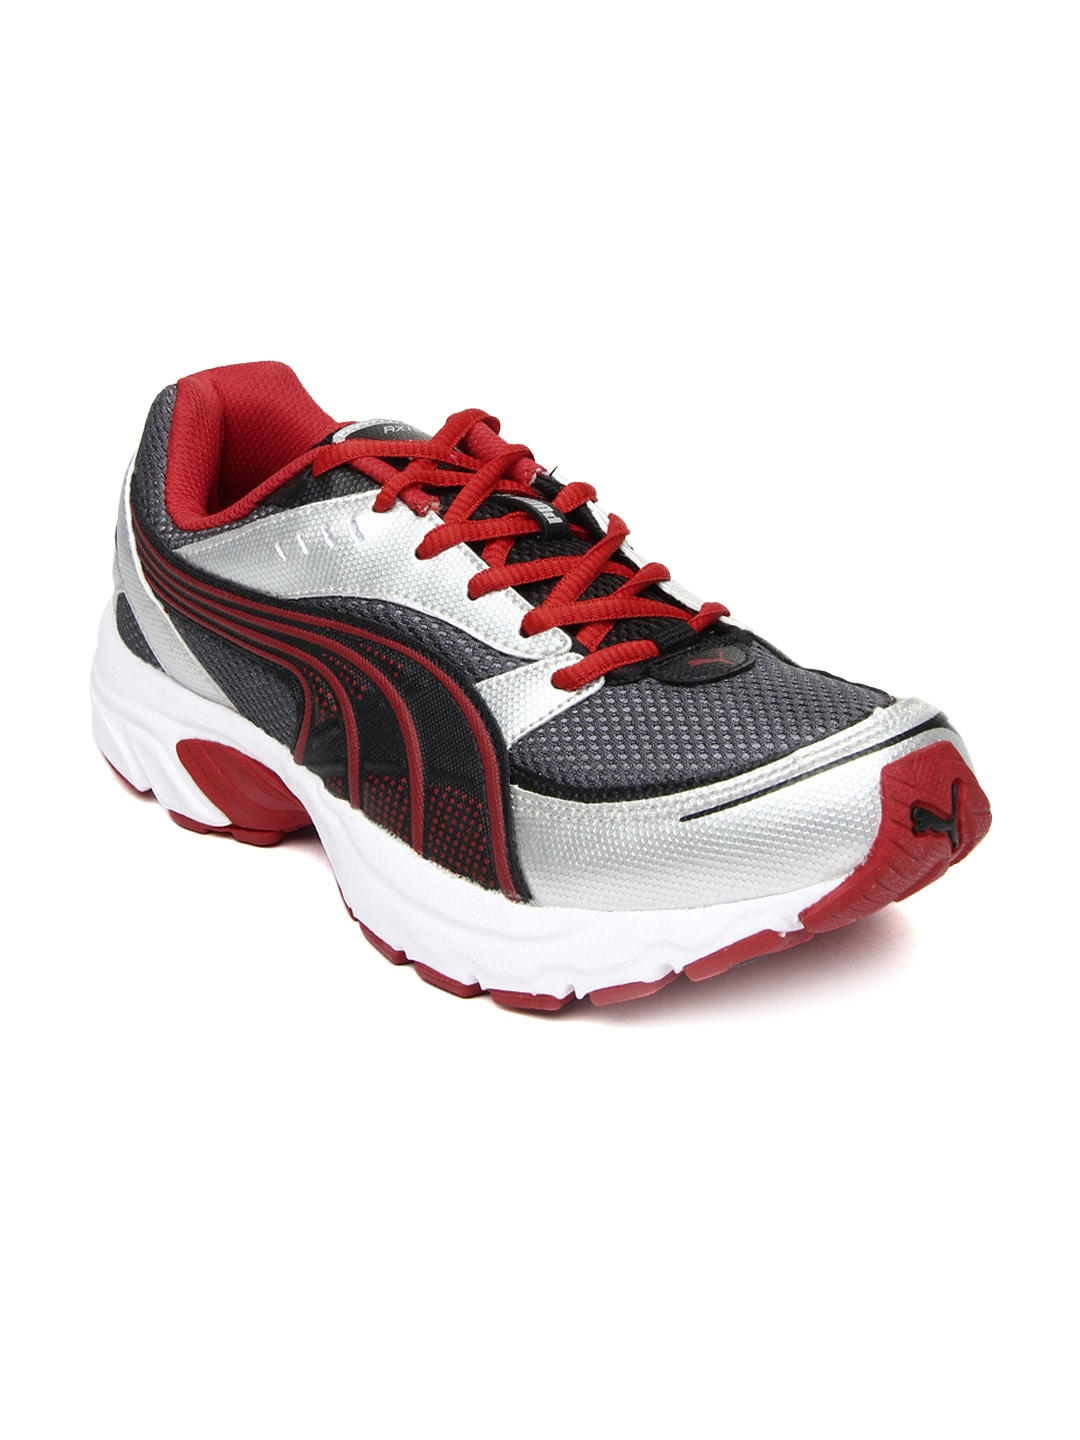 Puma 18800203 Men Grey Axis Iii Dp Sports Shoes - Best Price in ... 56b8246e3d